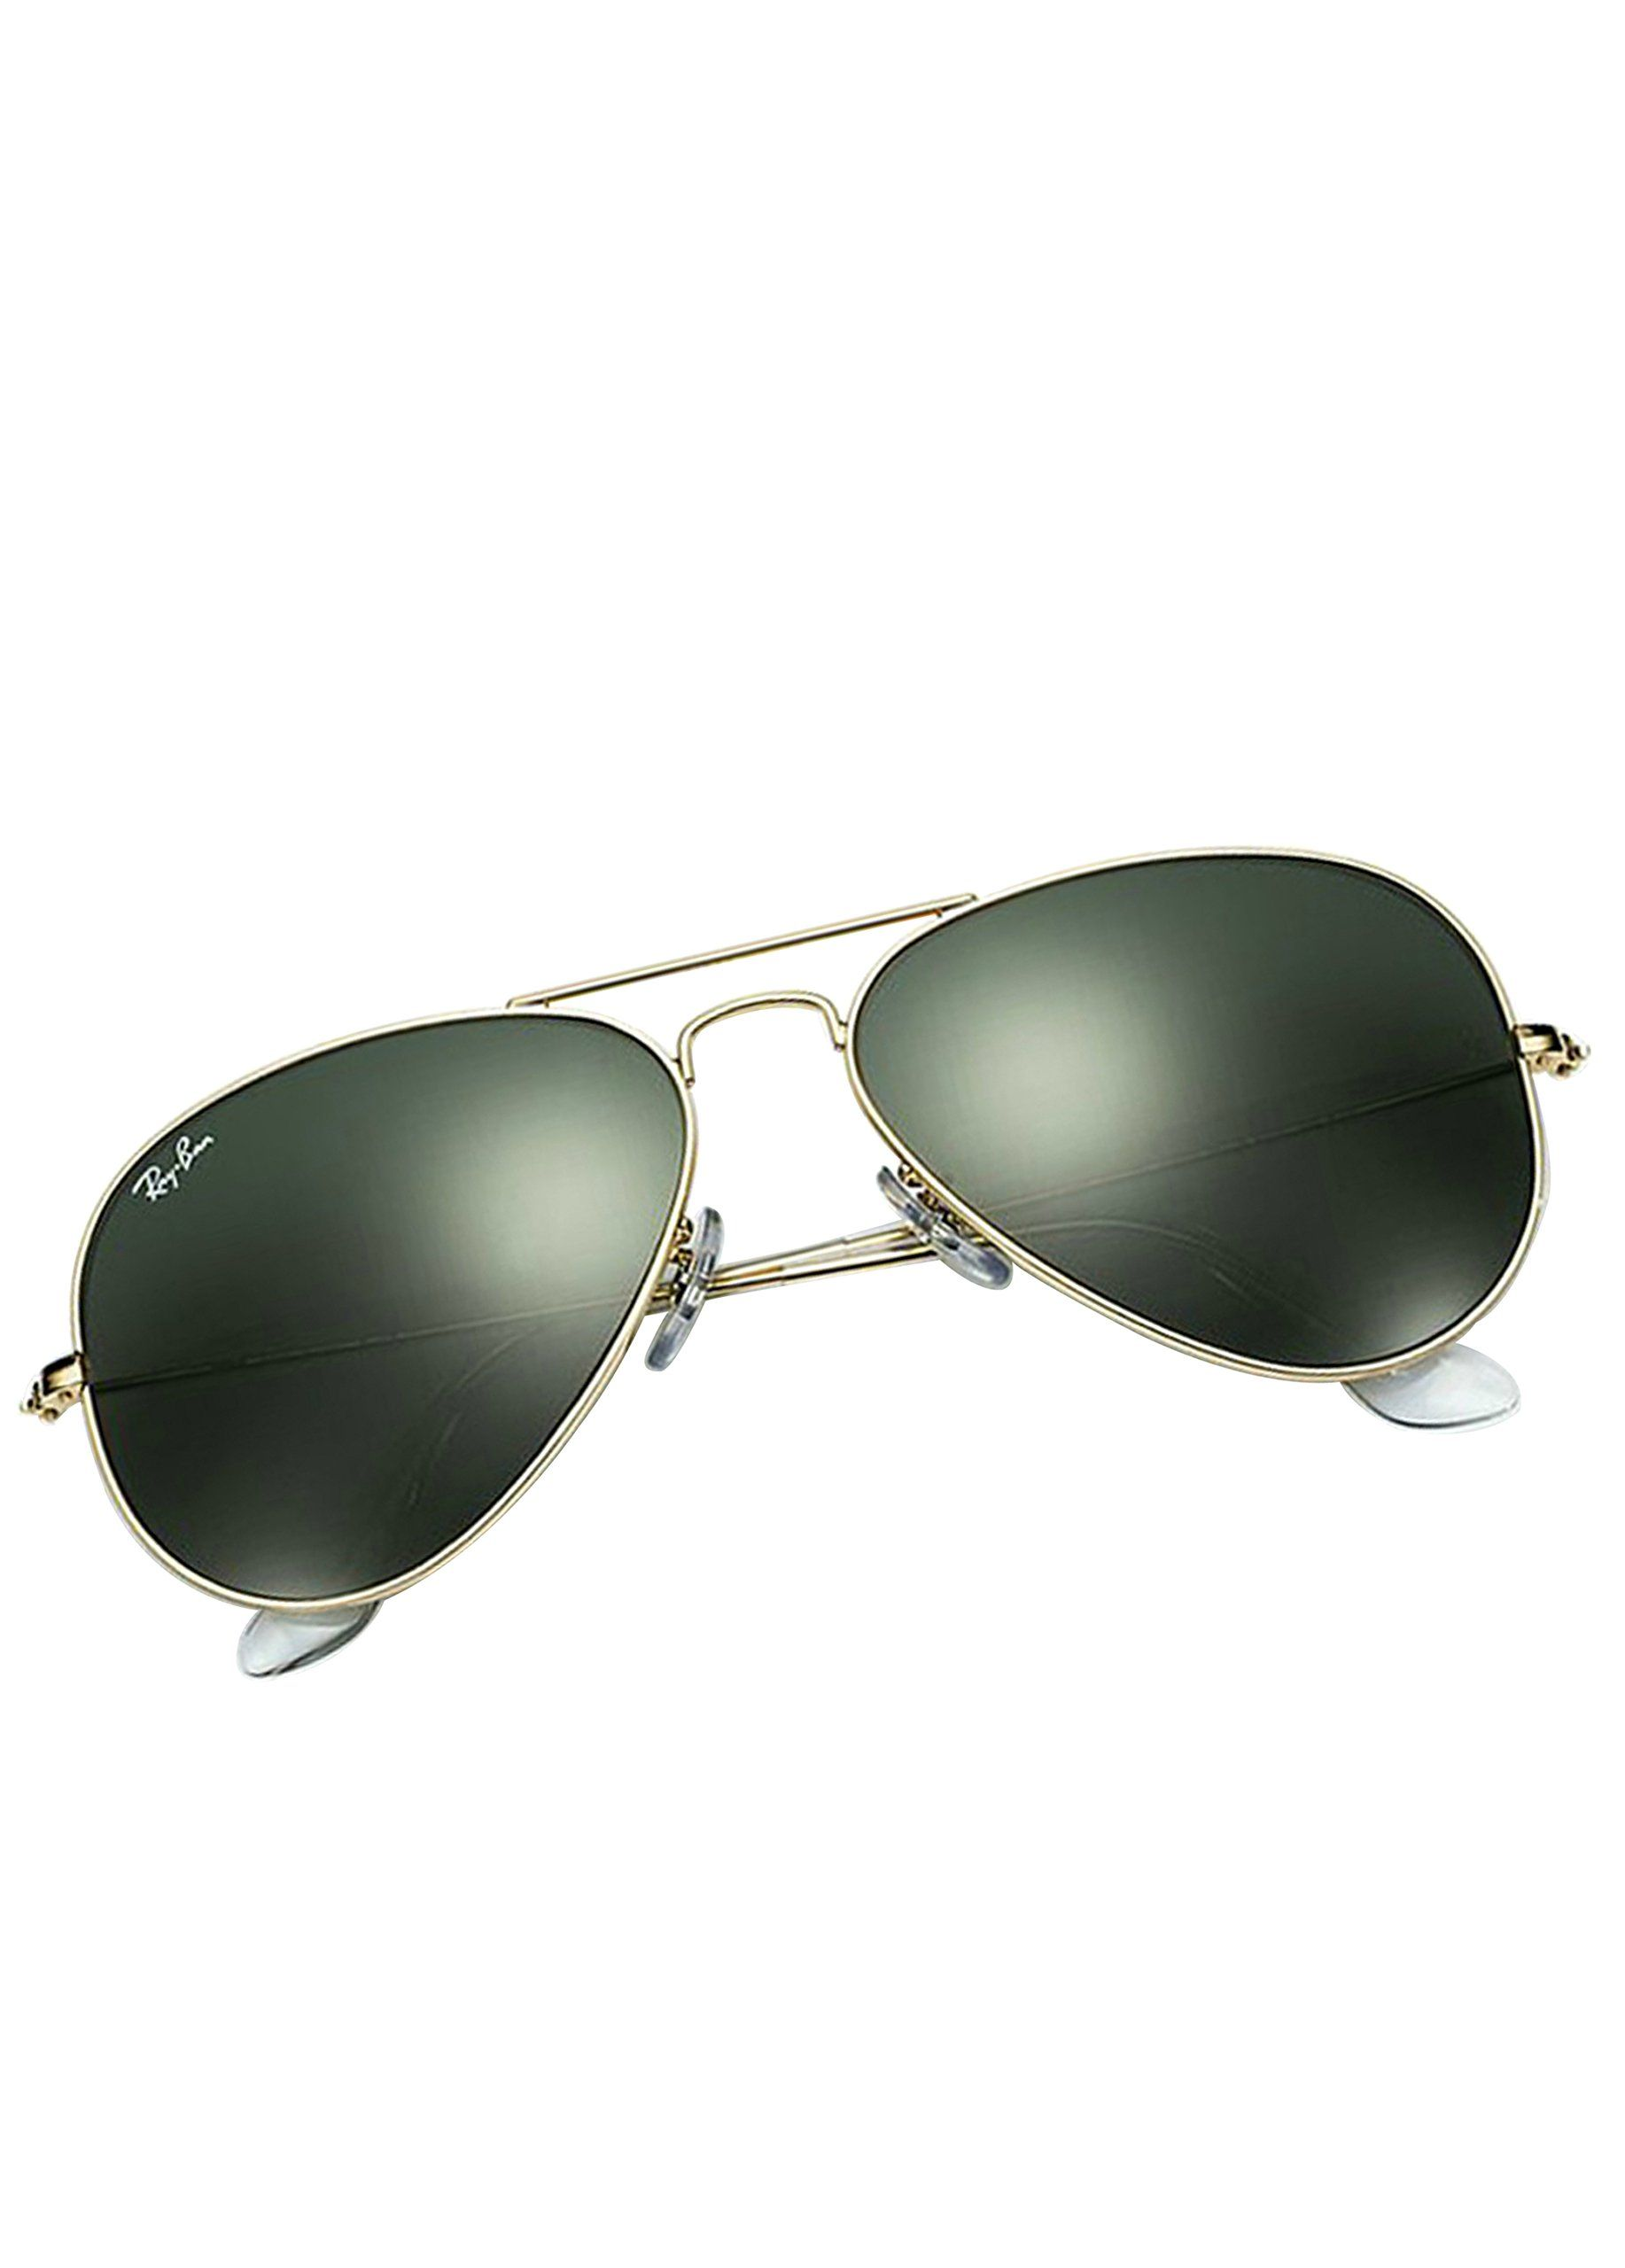 148529e517 Ray-Ban AVIATOR LARGE METAL - GOLD Frame GREY GREEN Lenses 58mm  Non-Polarized